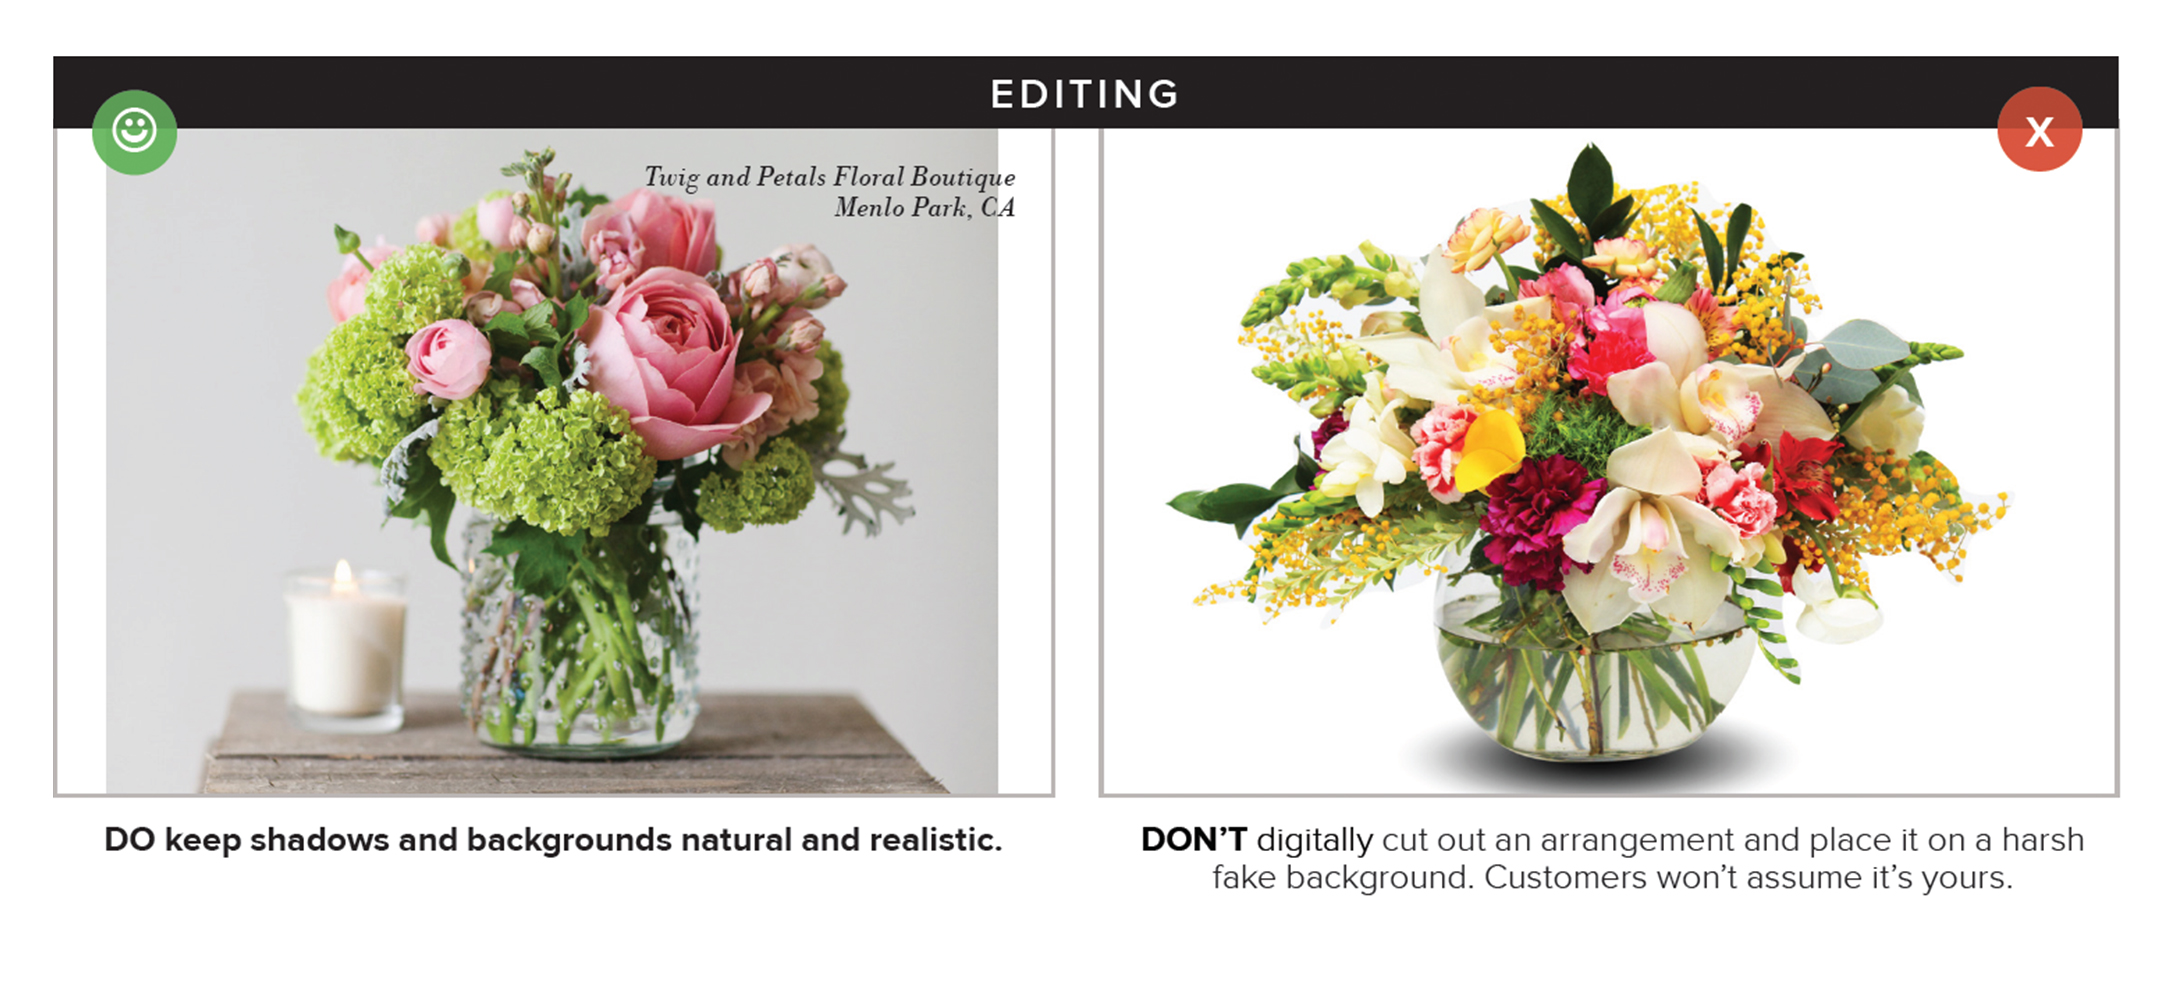 Product Photography Recommendations – BloomNation Help Center